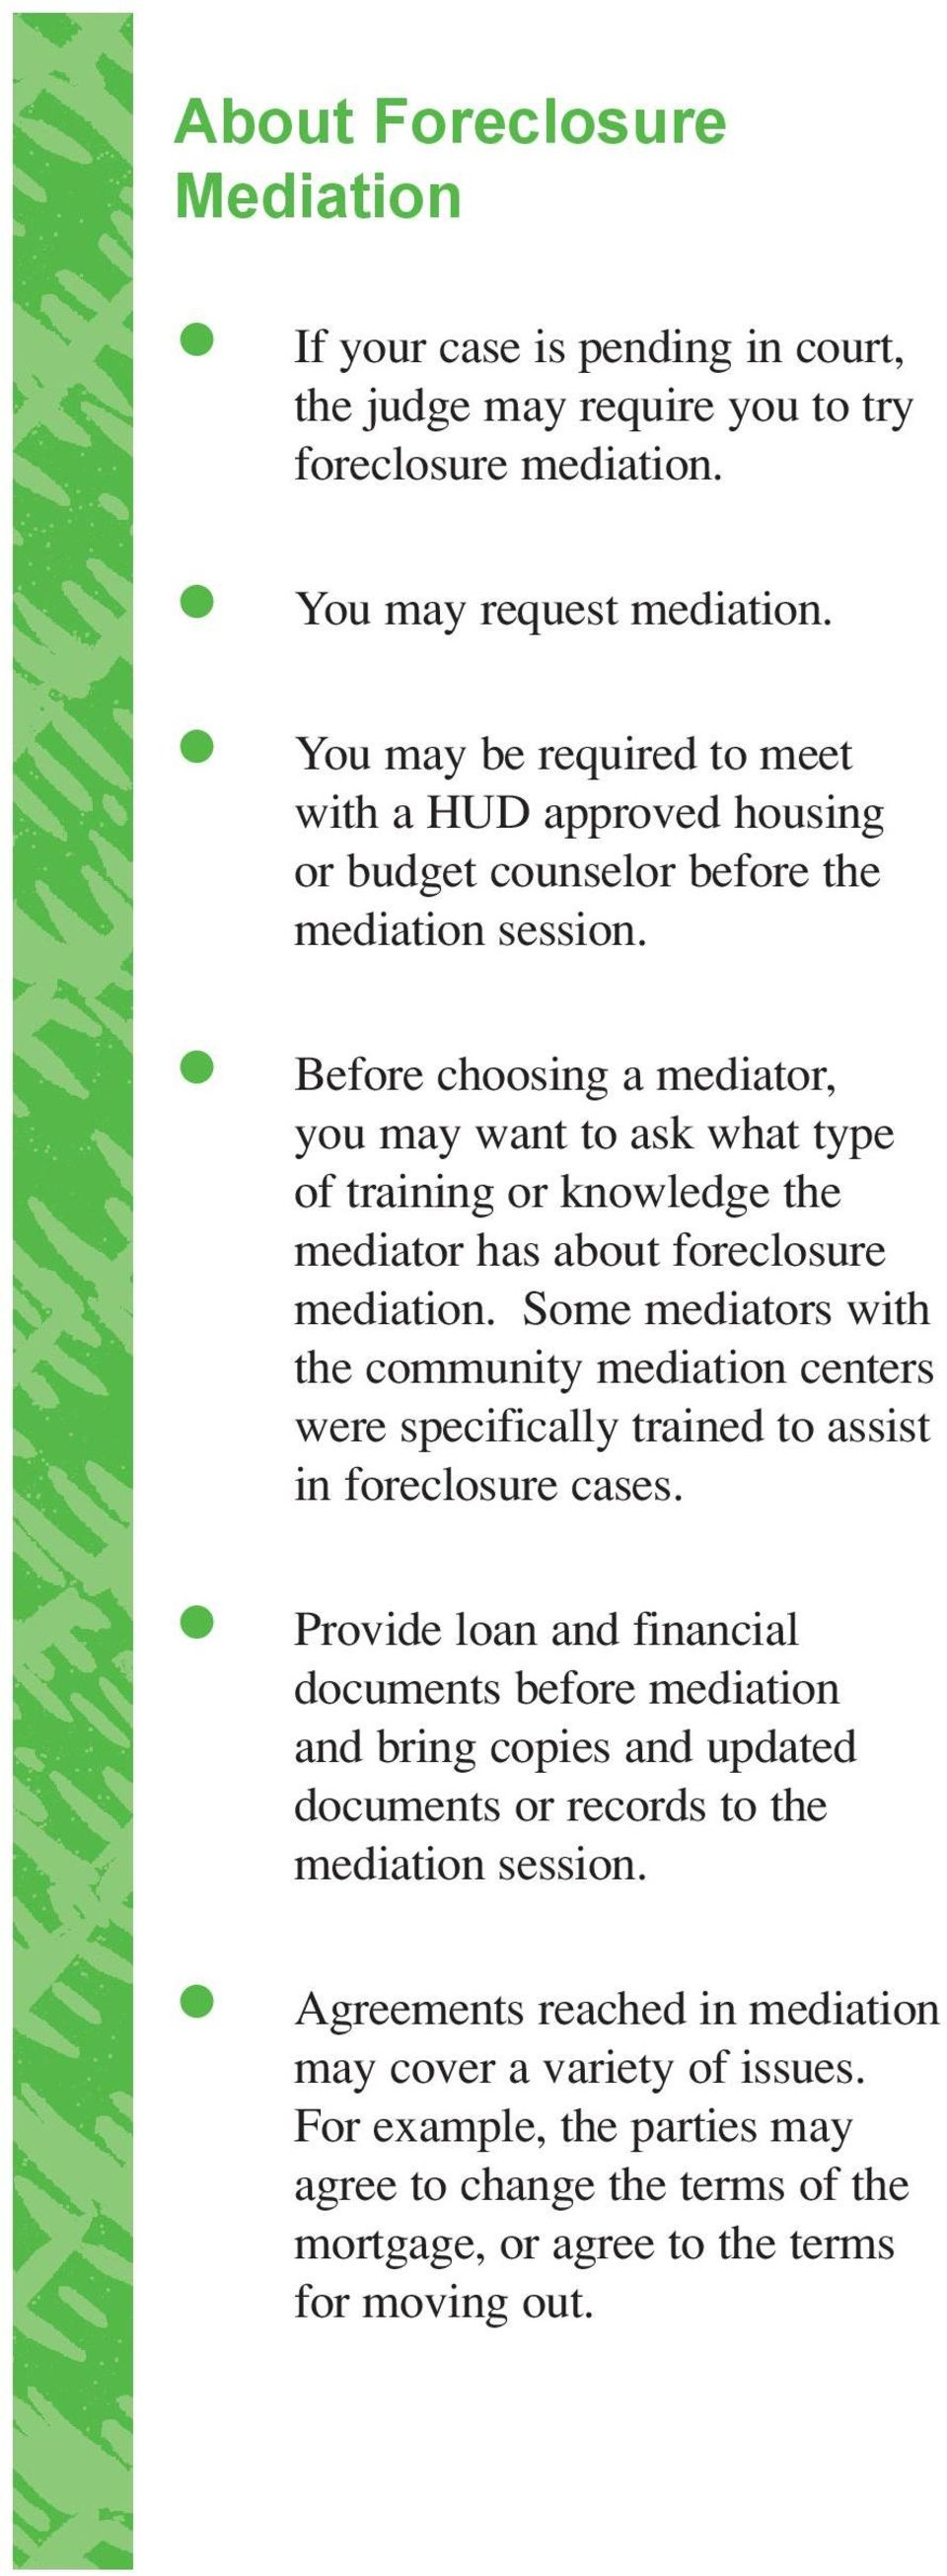 Before choosing a mediator, you may want to ask what type of training or knowledge the mediator has about foreclosure mediation.